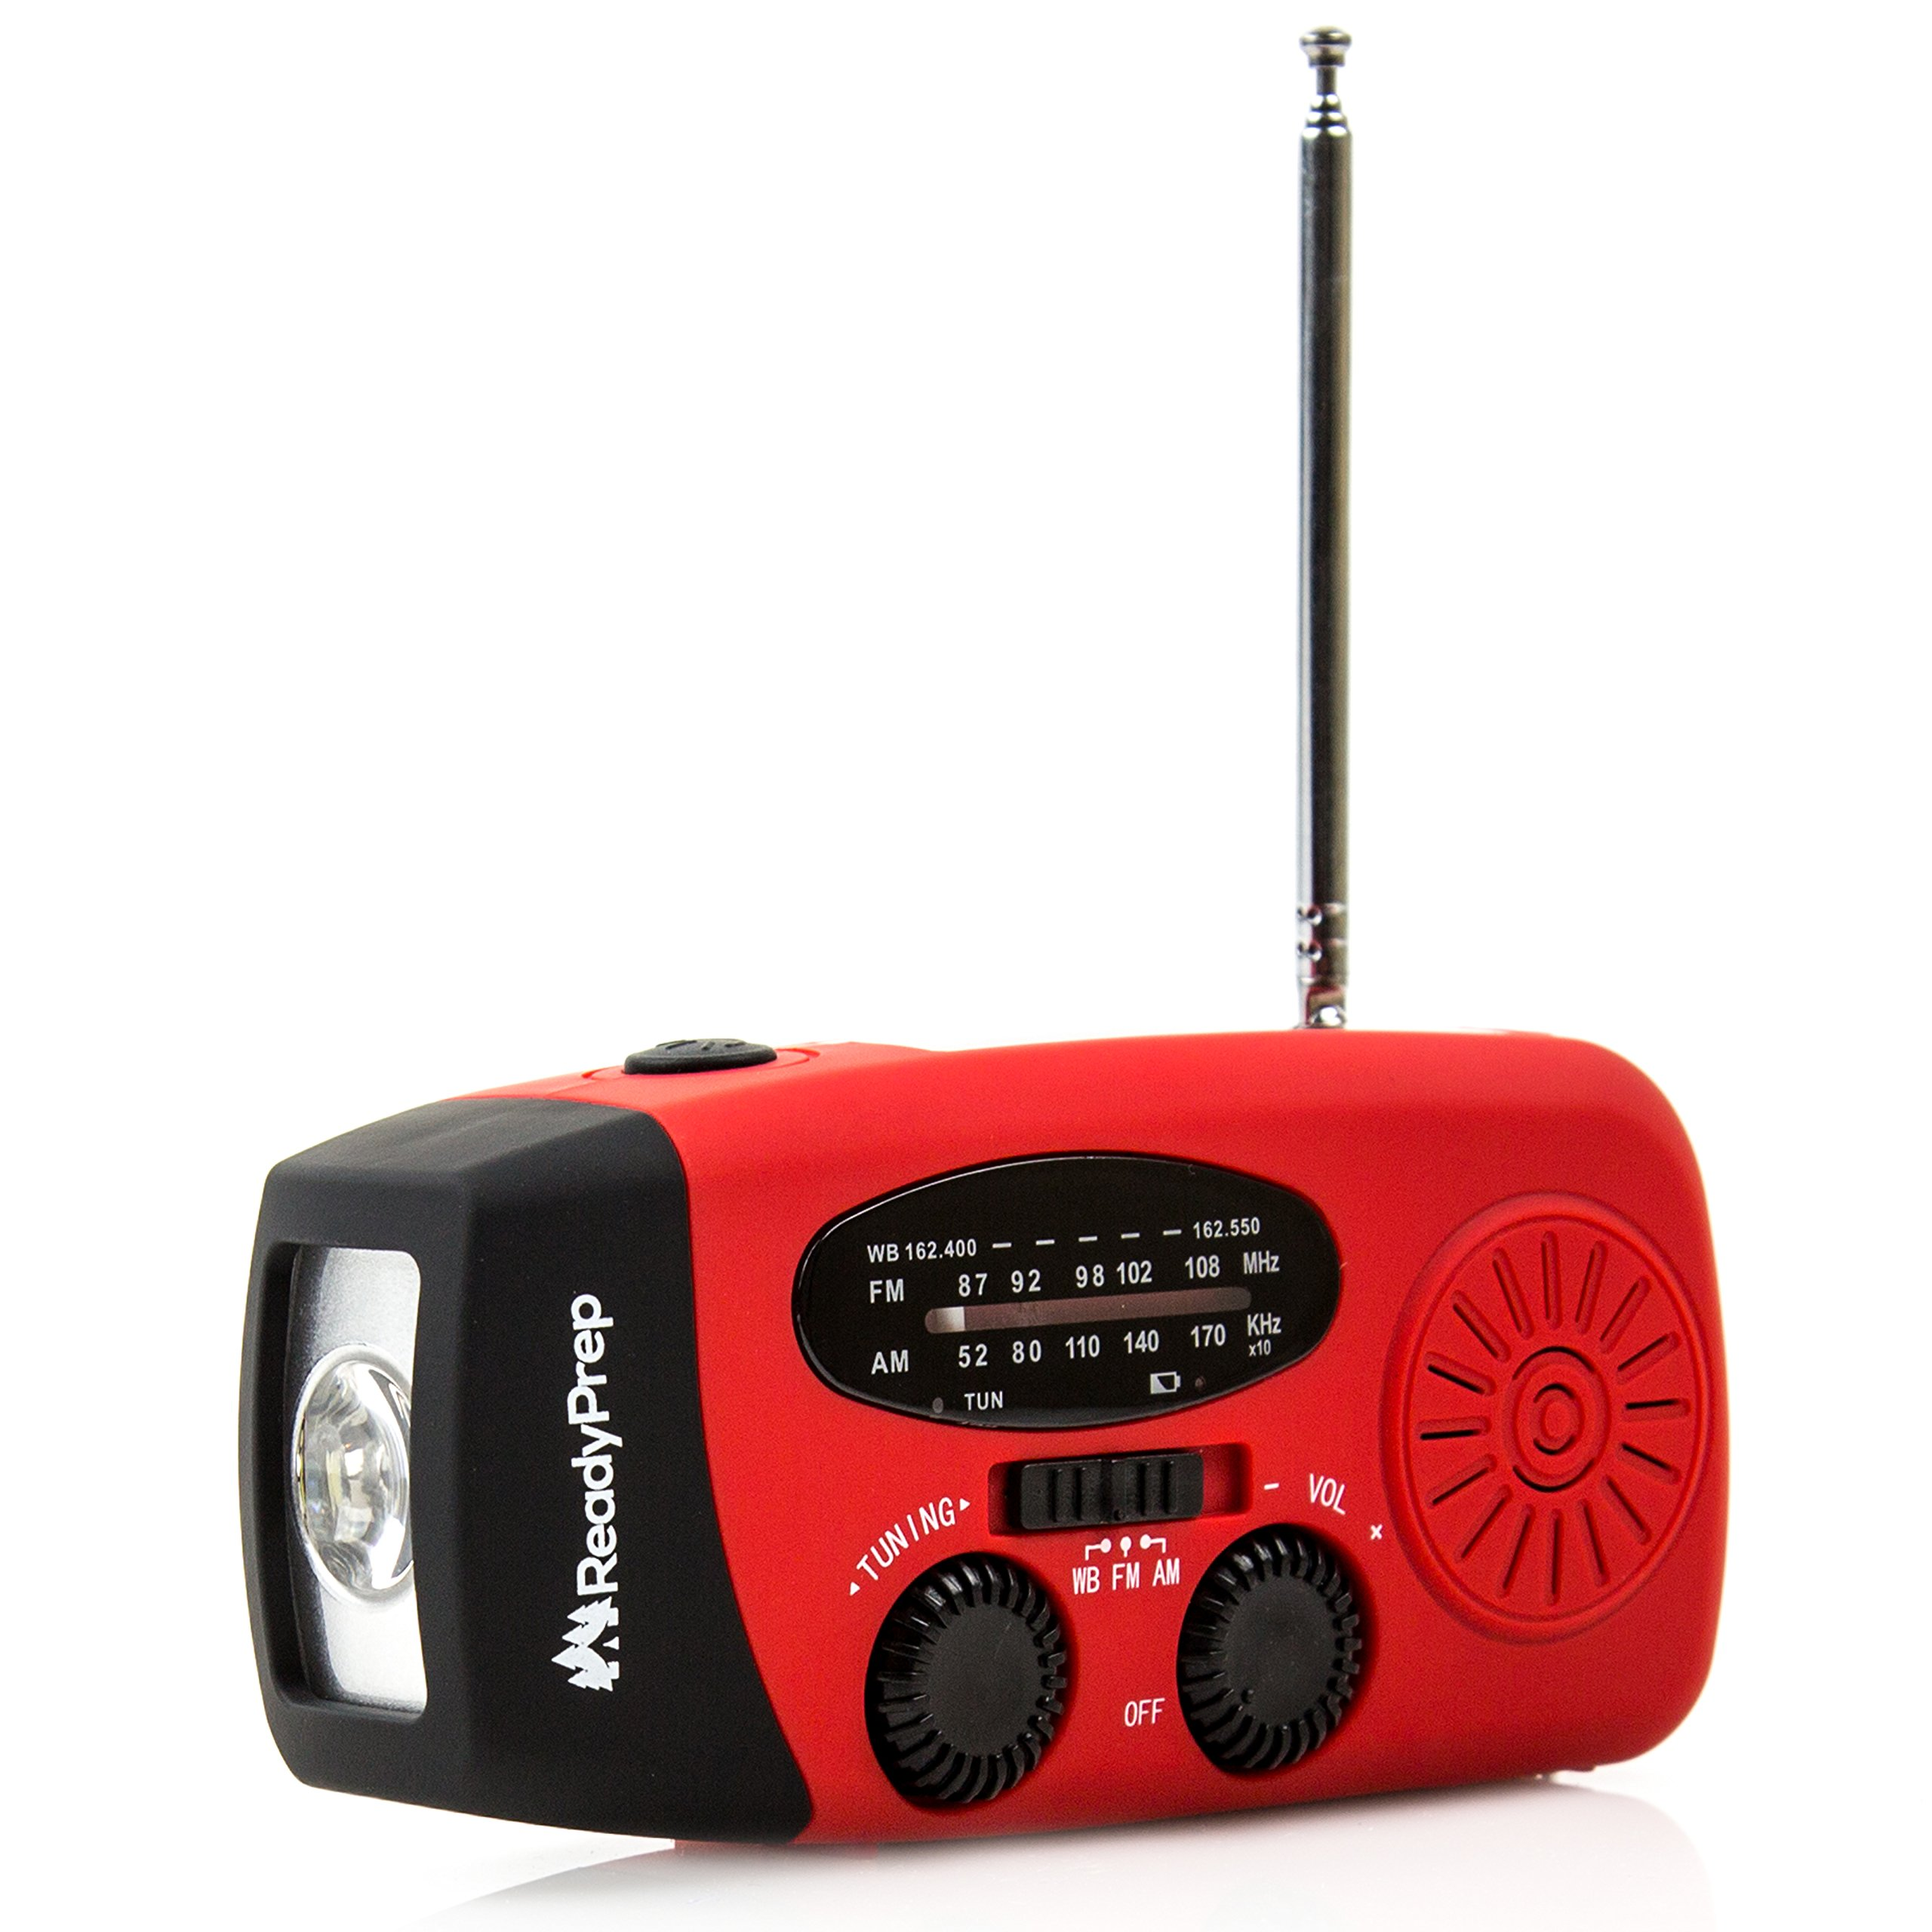 Emergency Hand Crank Self Powered AM/FM NOAA Solar Weather Radio with LED Flashlight, 1000mAh Power Bank for iPhone/Smart Phone, Camping, Outdoor, Survival